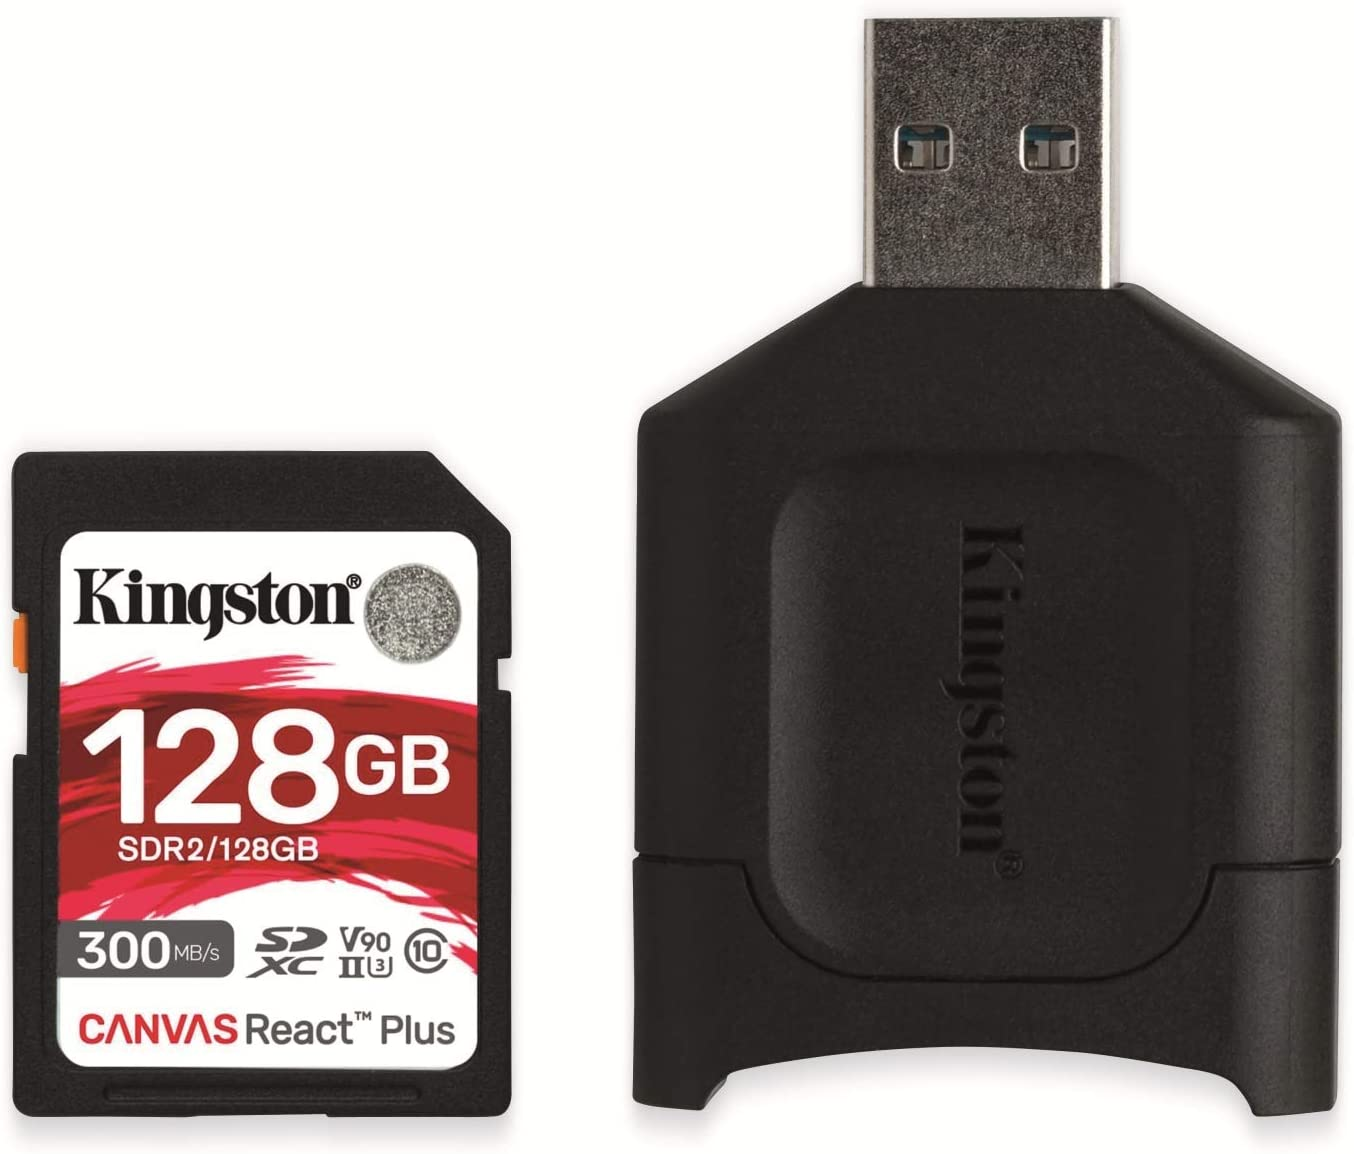 100MBs Works with Kingston Kingston 64GB Samsung I8552 MicroSDXC Canvas Select Plus Card Verified by SanFlash.